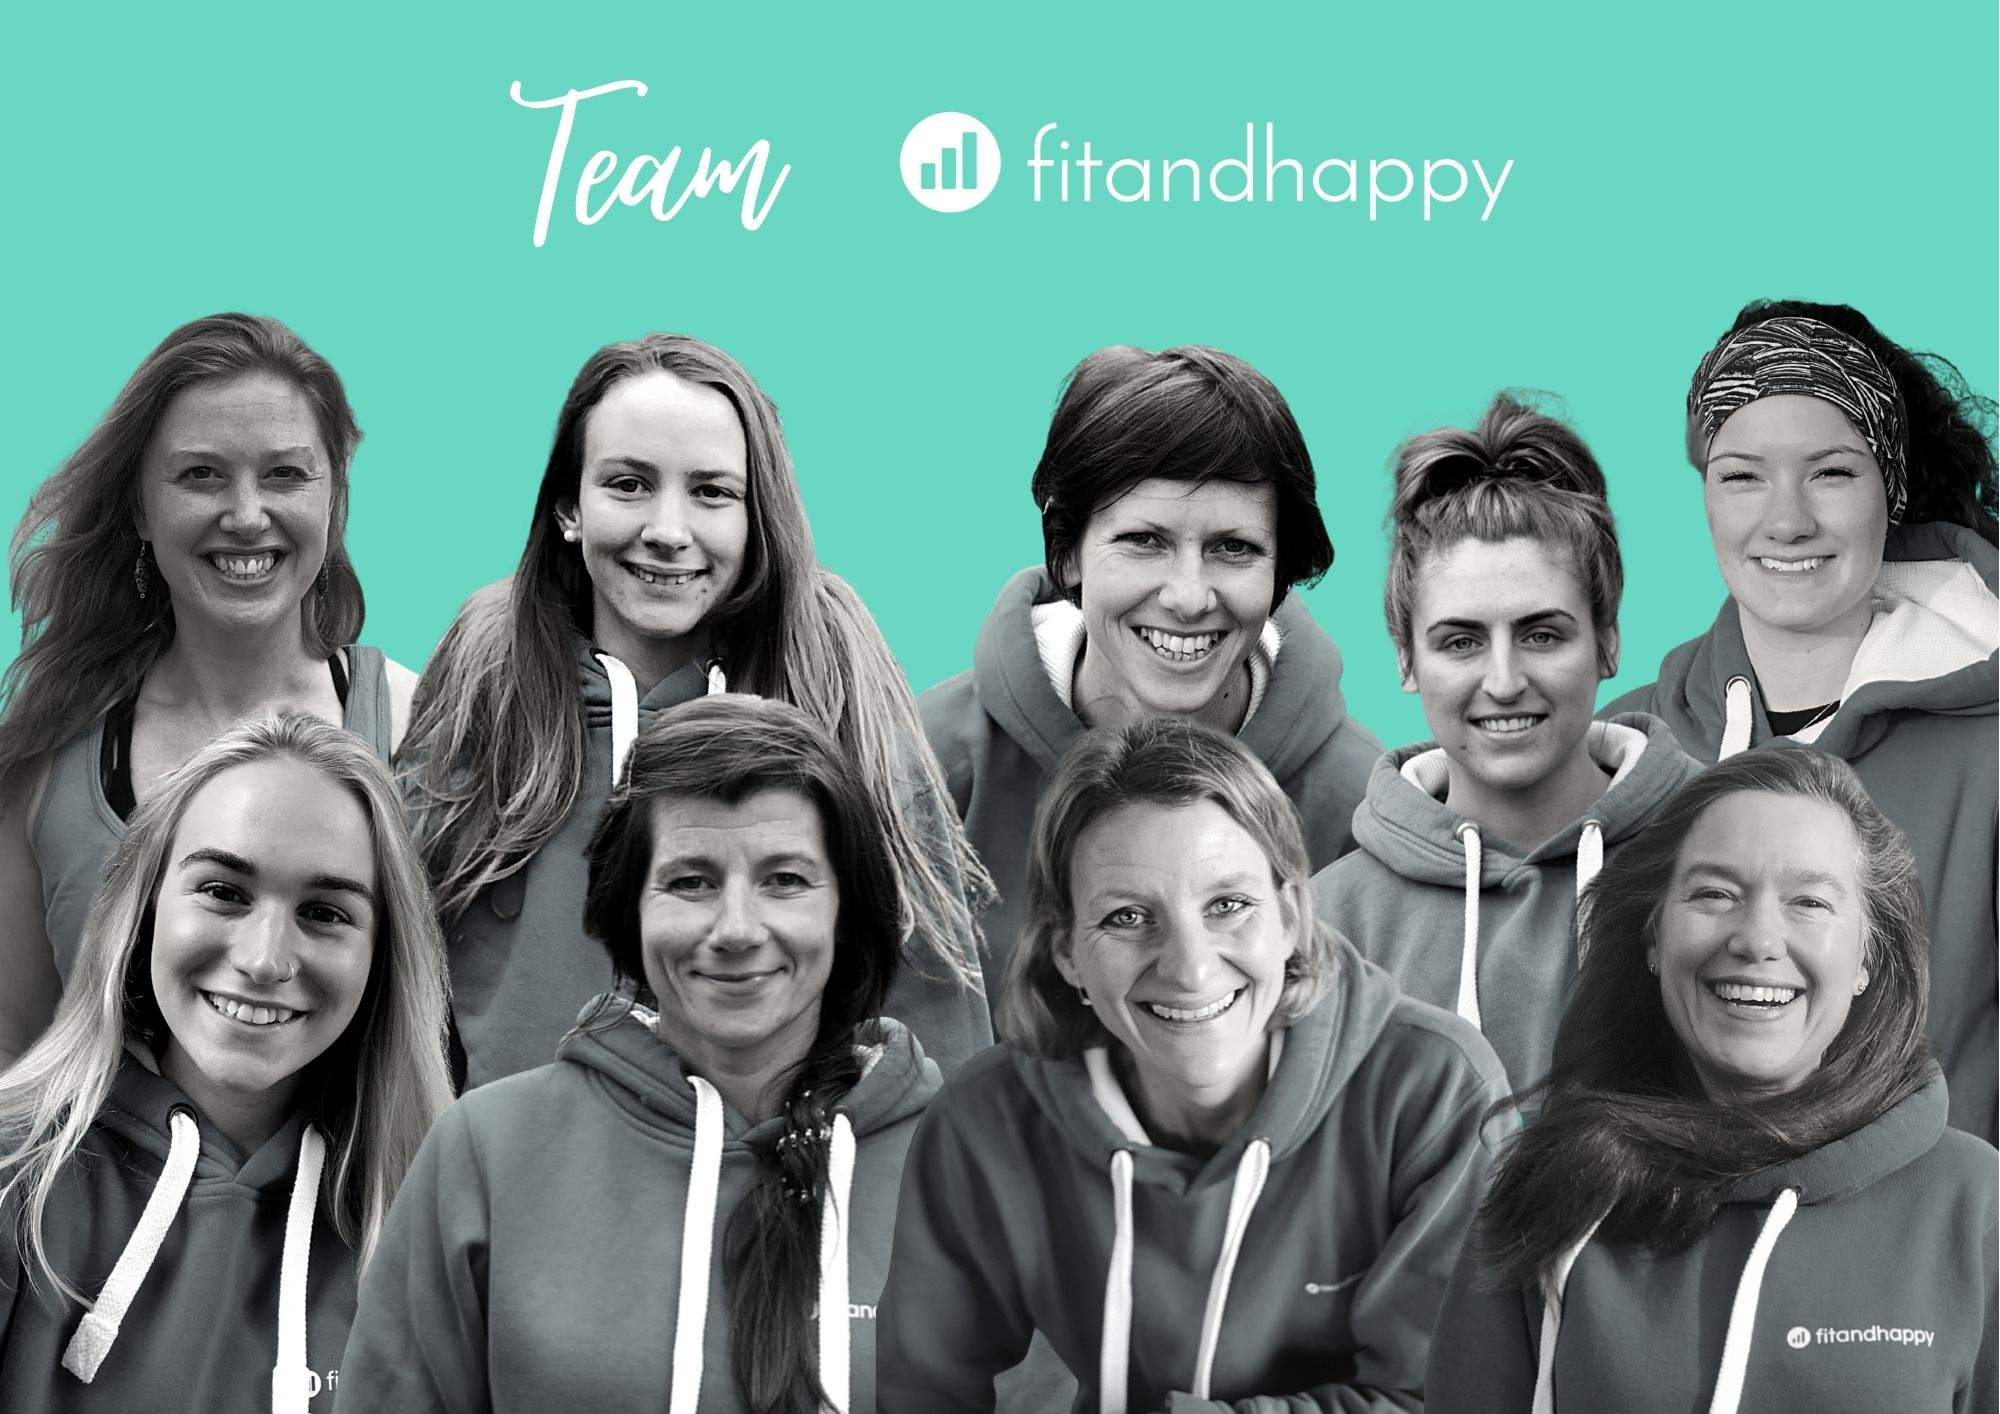 online personal trainers team fitandhappy